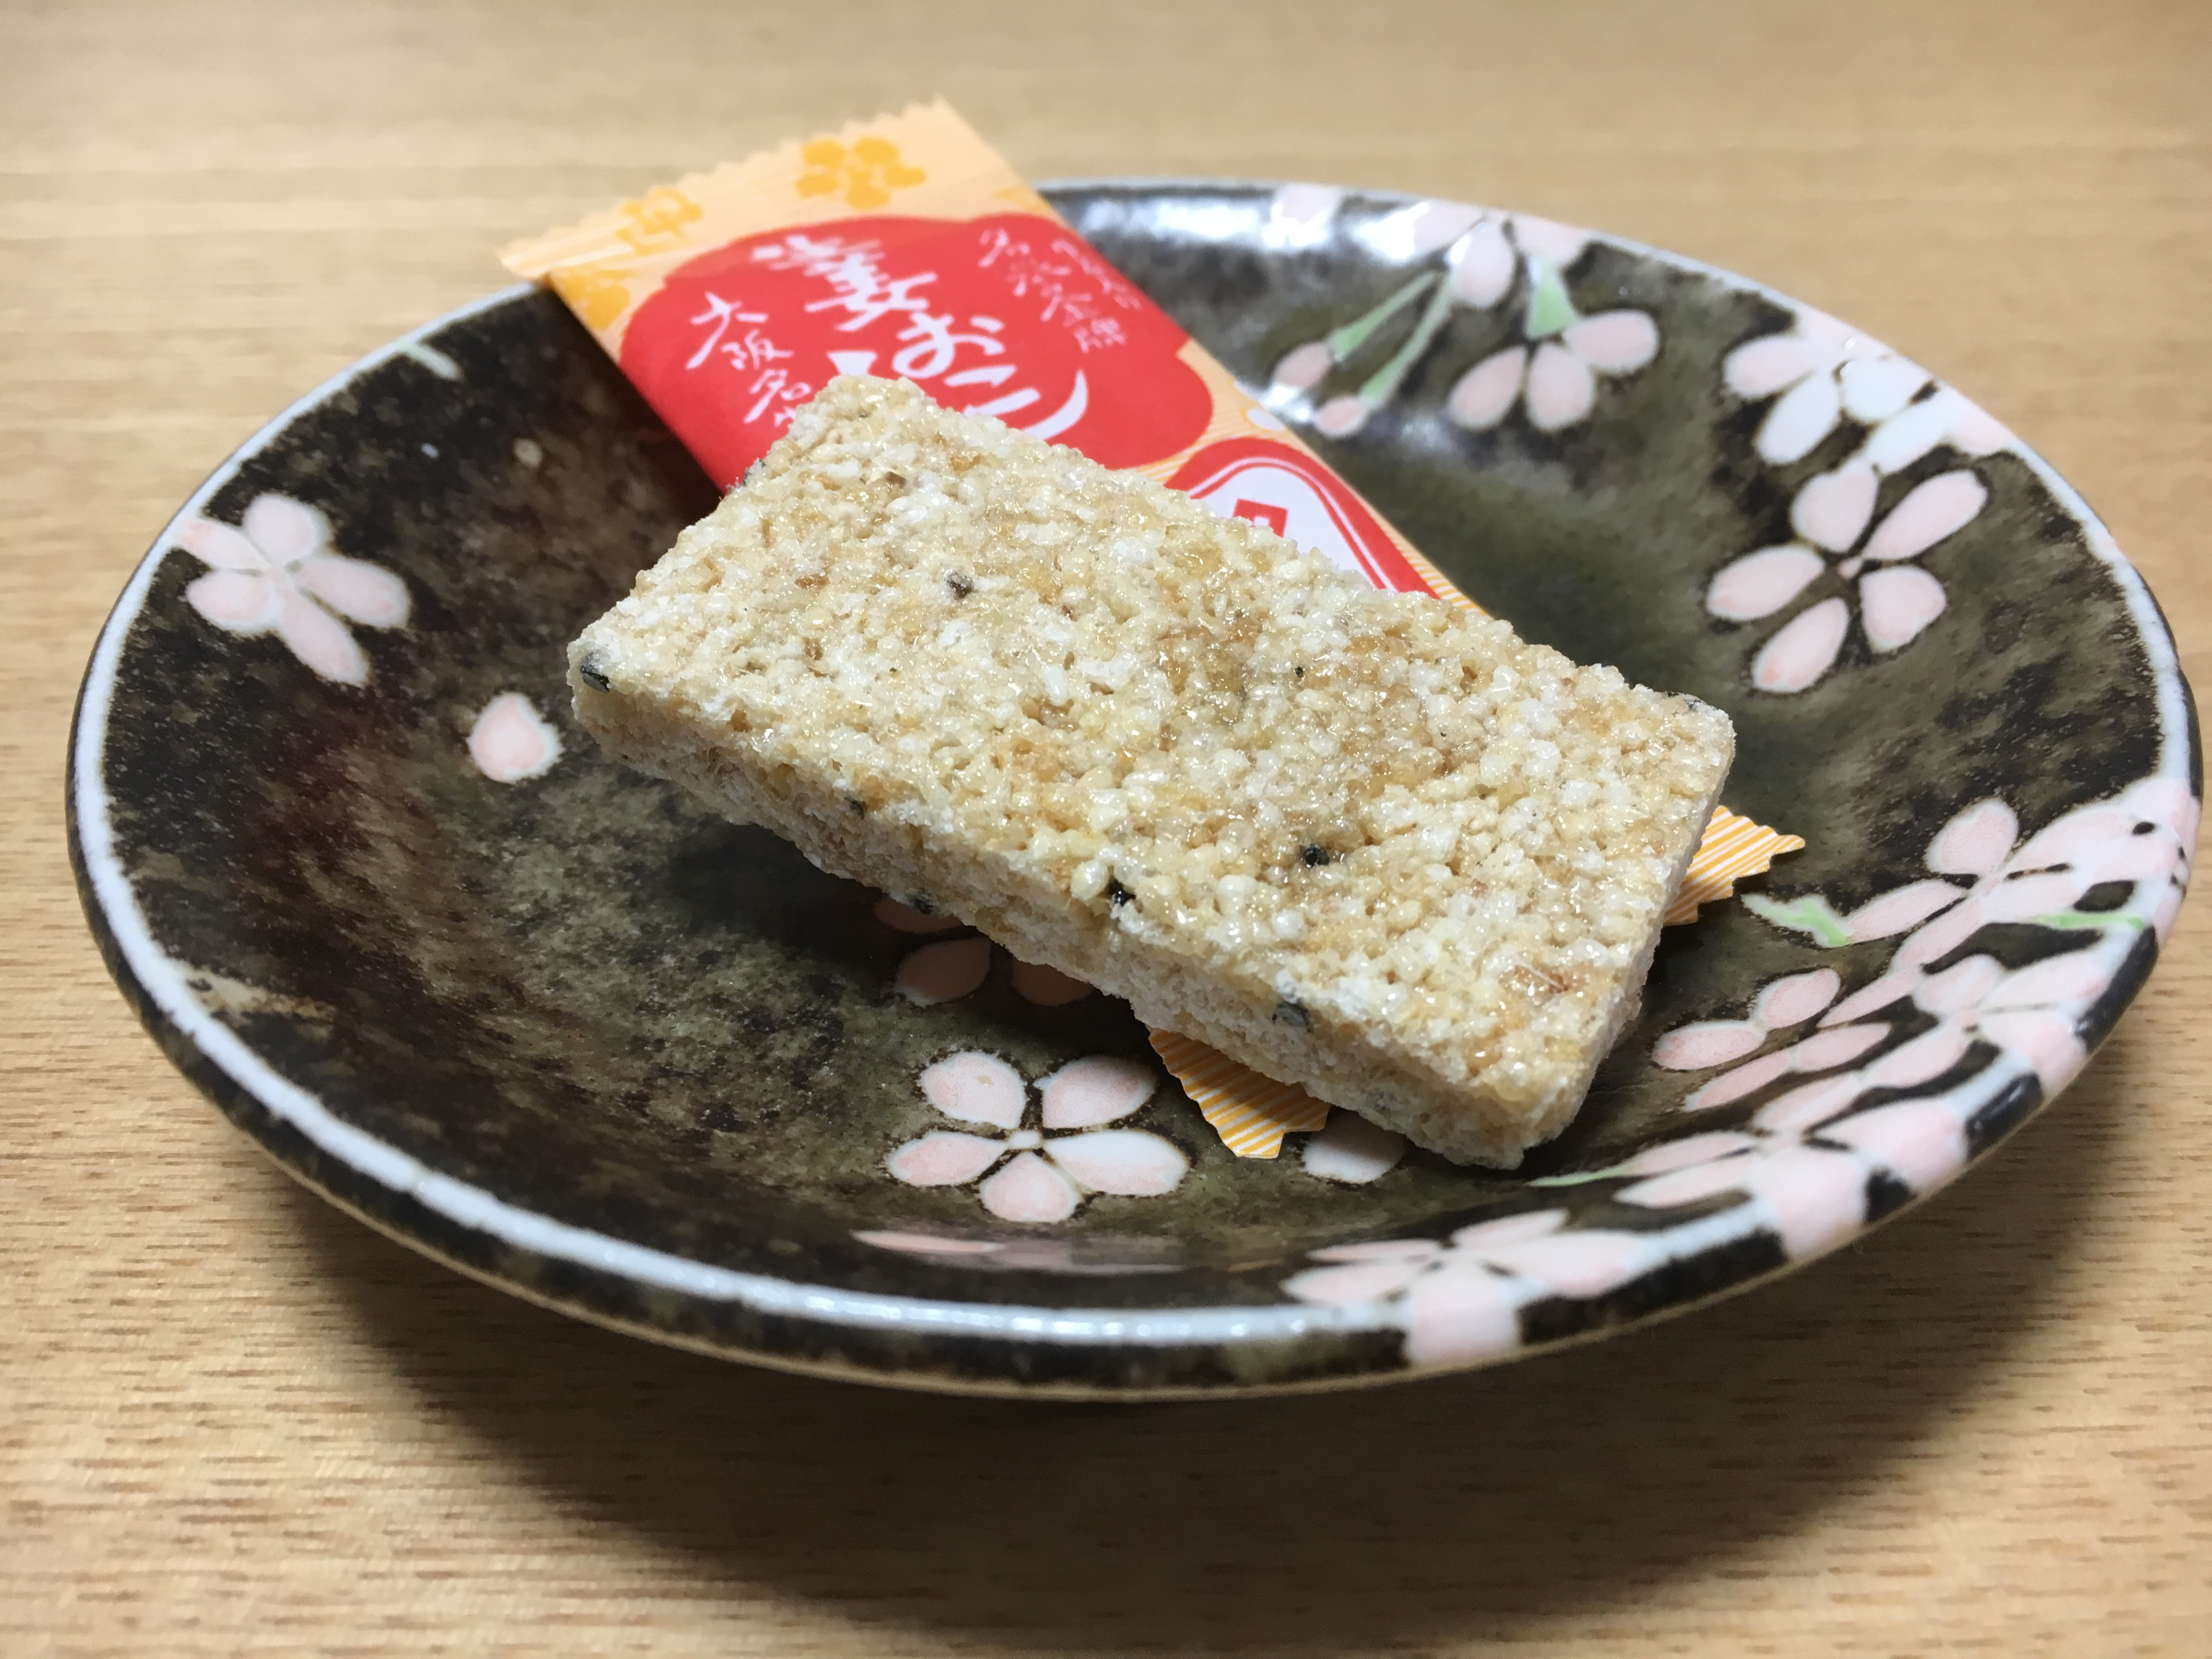 ginger flavored okoshi snack on a black plate from Futatsuido Tsunose